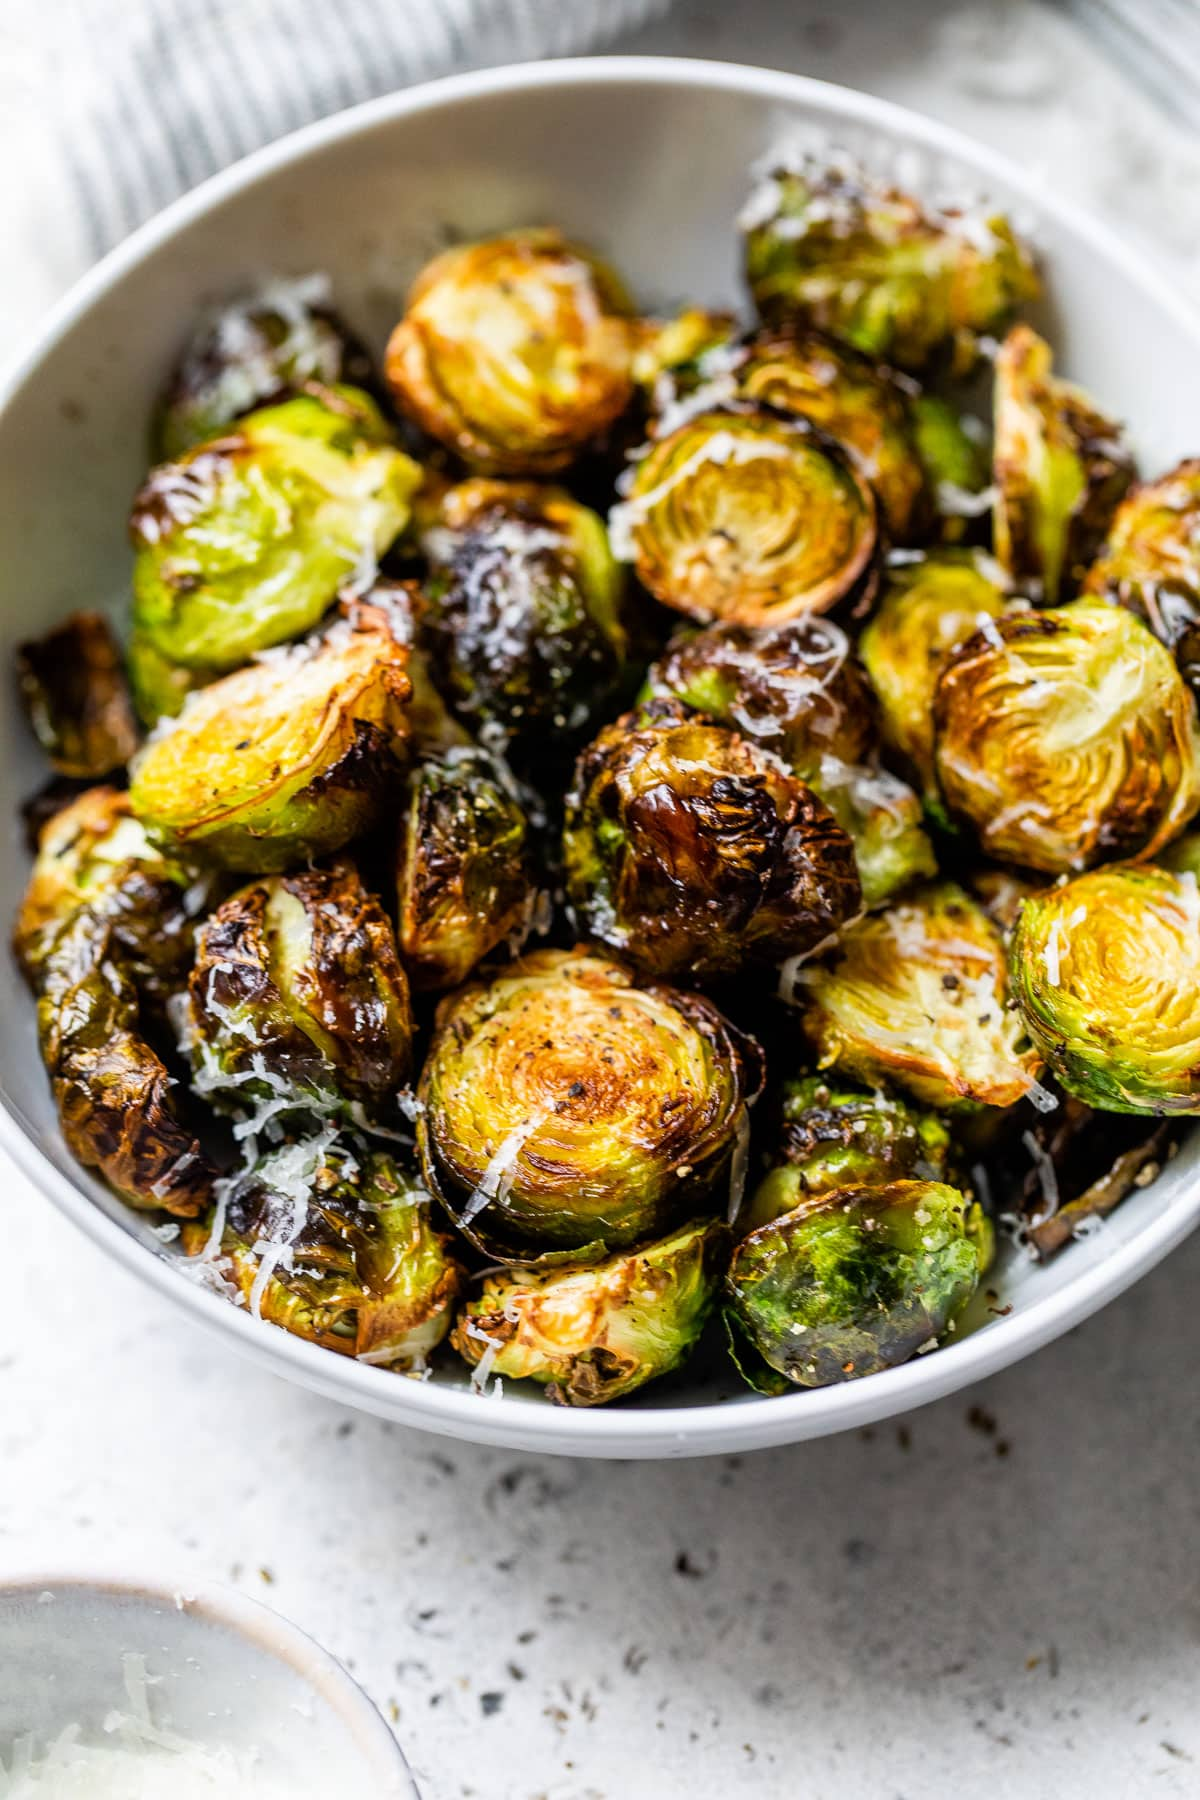 Brussels sprouts in a bowl with cheese